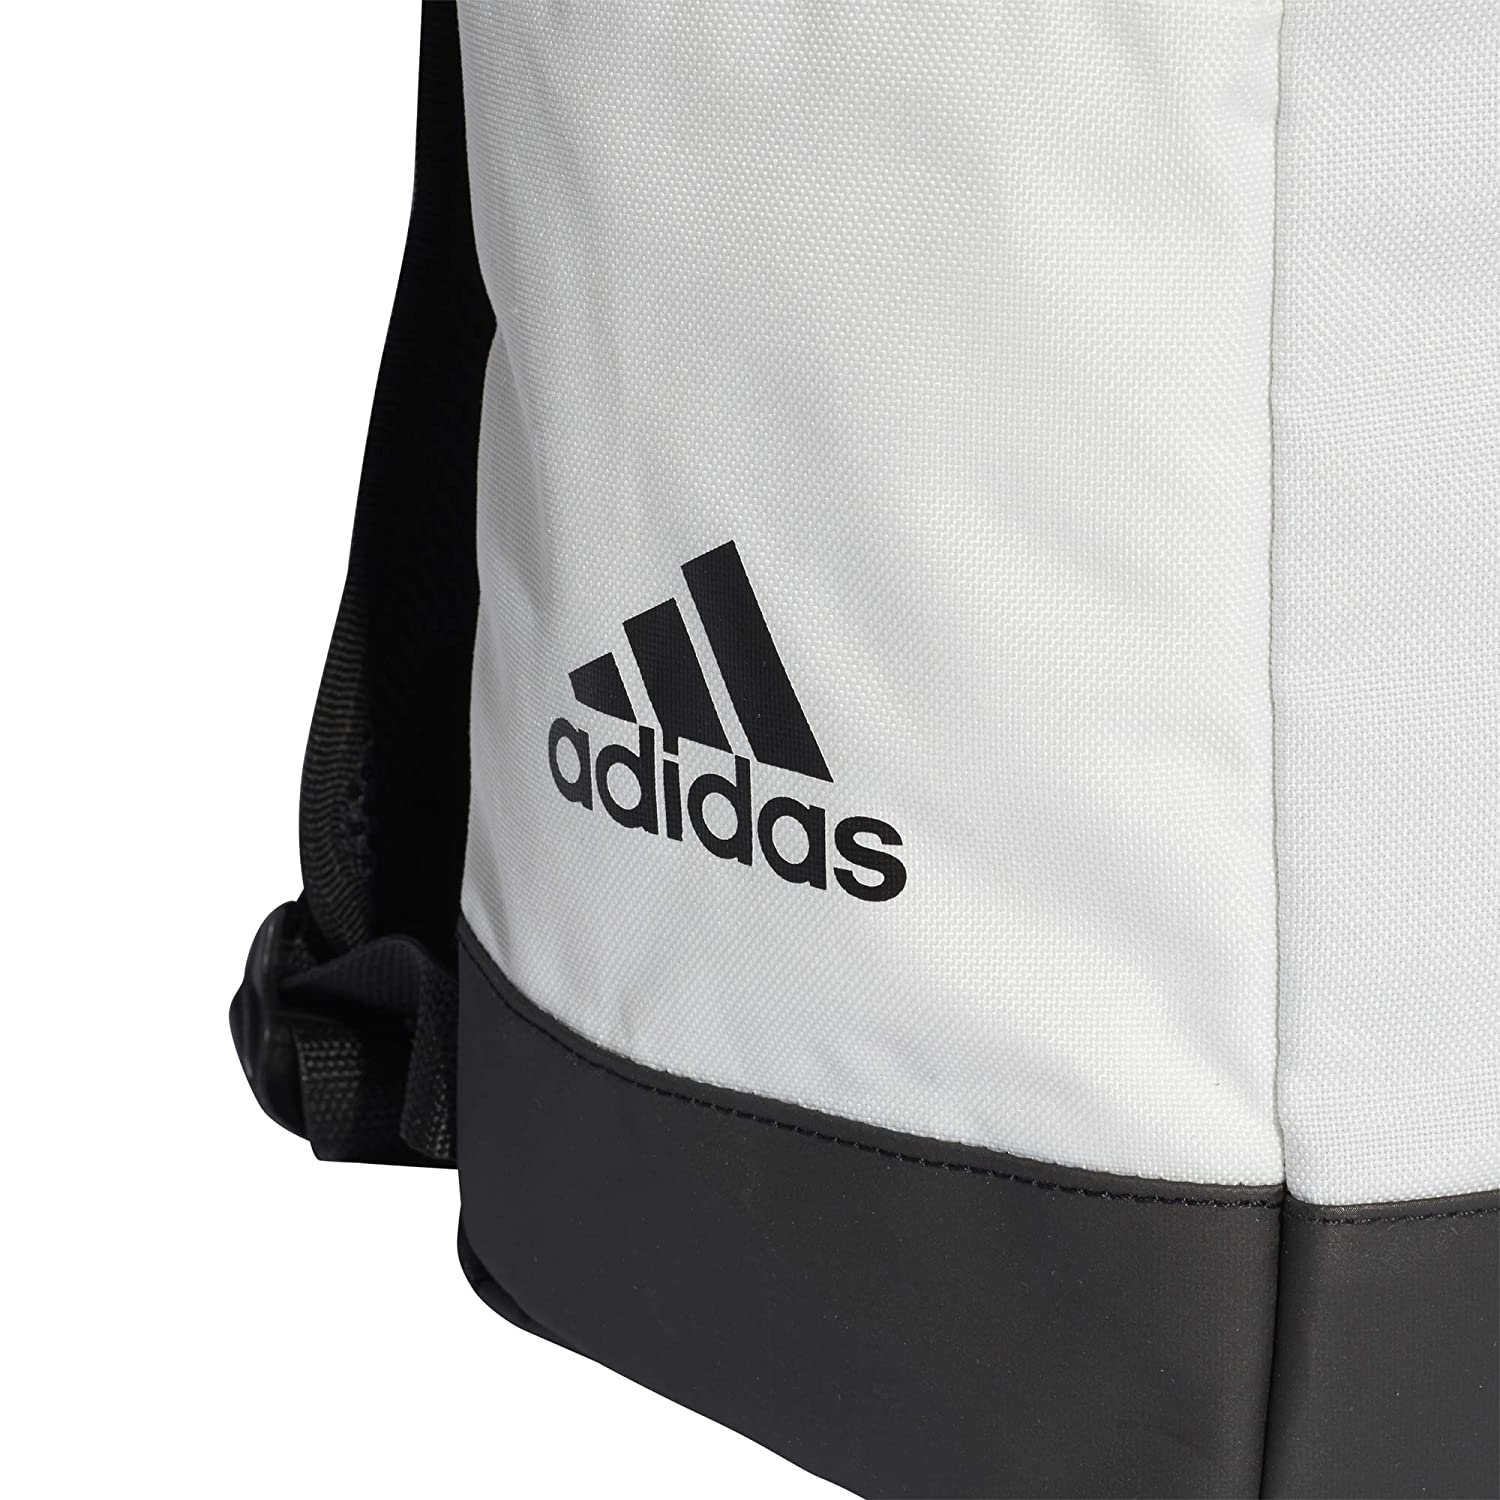 5c08ab5c0f0 Amazon.com : adidas 2018-2019 Real Madrid Backpack (White) : Sports &  Outdoors